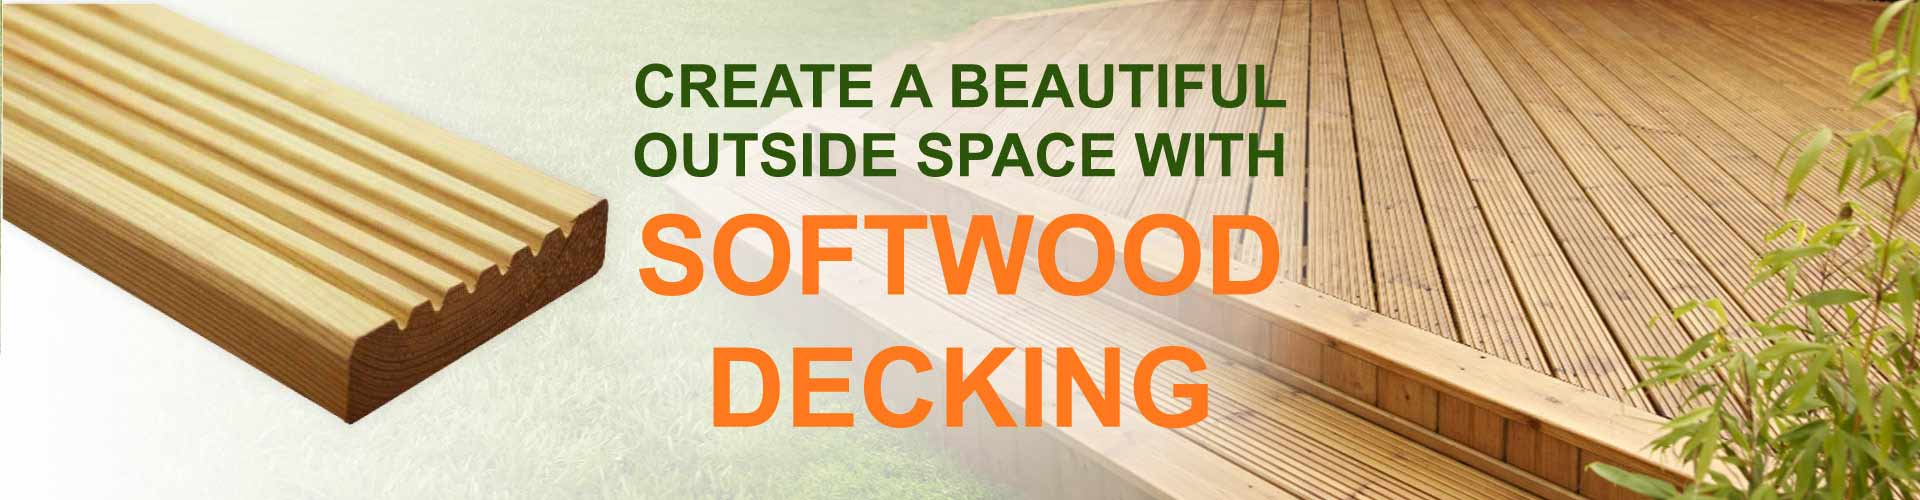 Softwood Decking